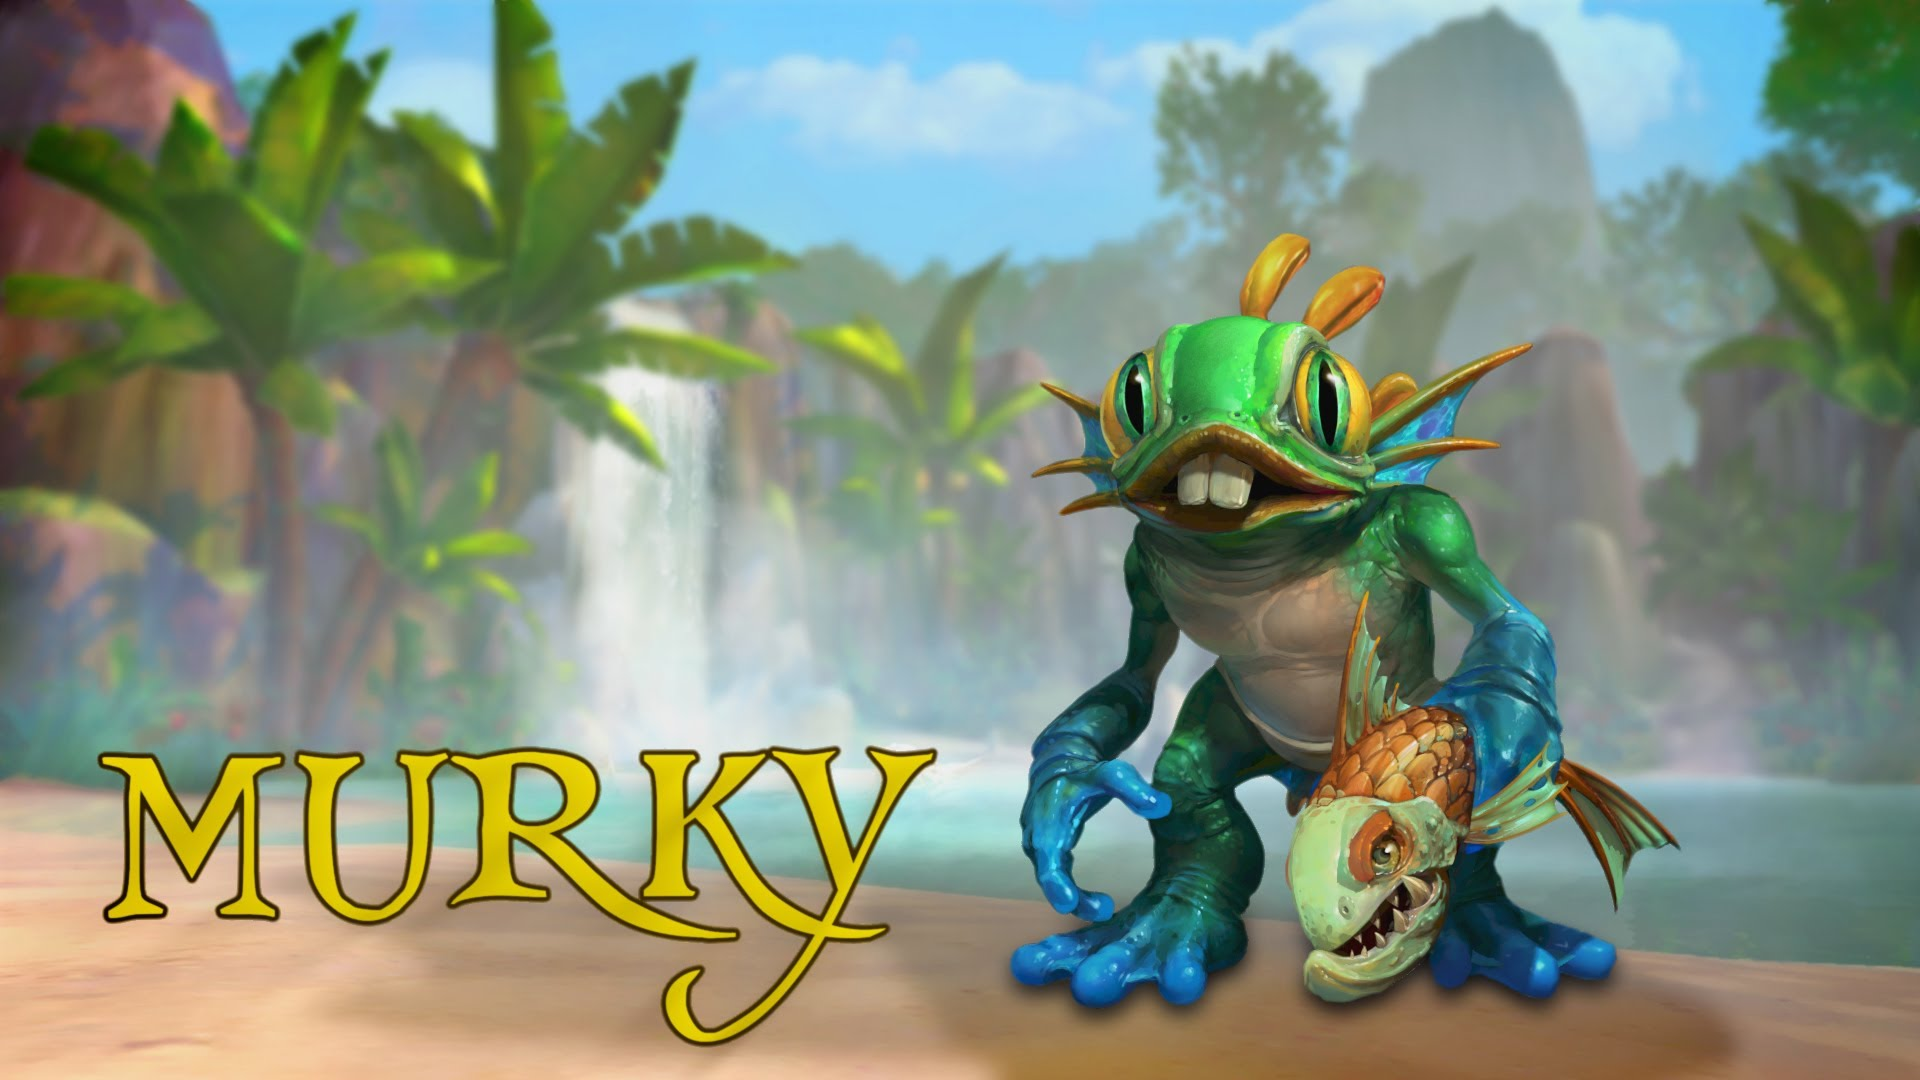 cdn.entertainment-focus.com/wp-content/uploads/2014/05/heroes-of-the-storm-murky-traile.jpg